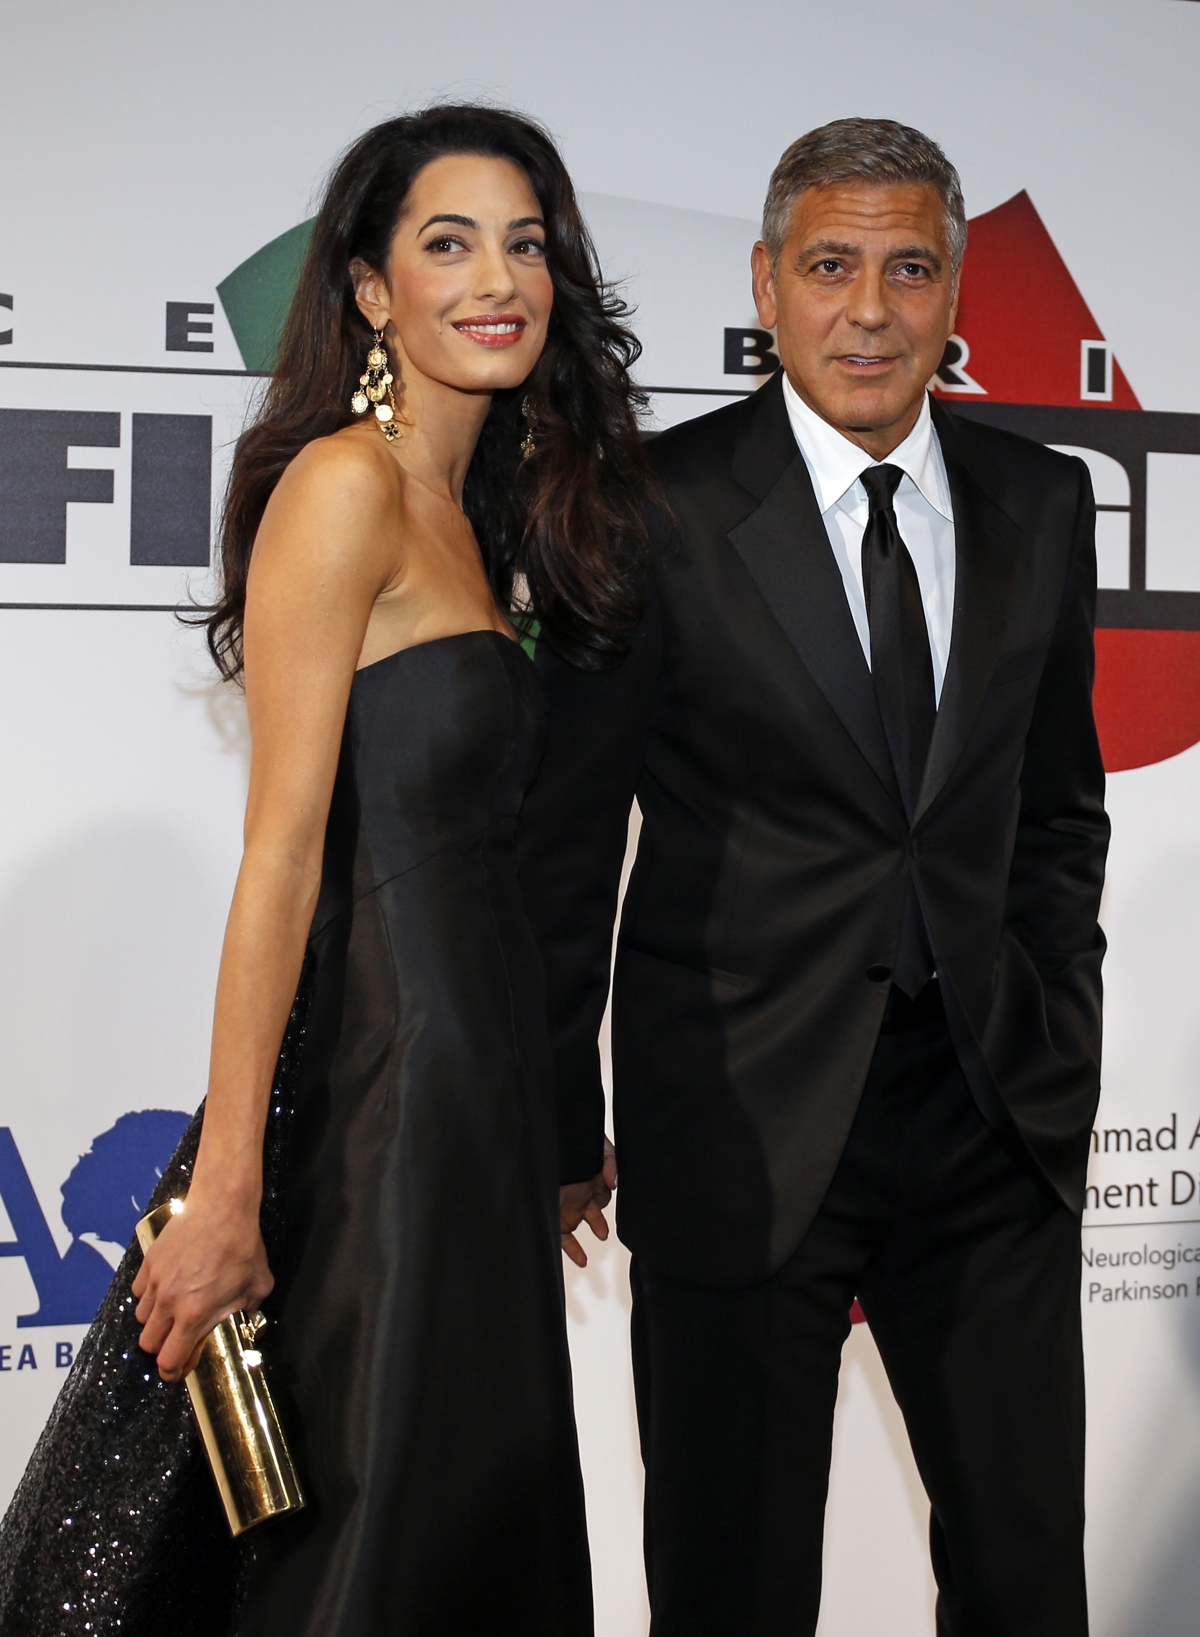 George Clooney  trapped  in a bad marriage with Amal  Here s the     George Clooney  trapped  in a bad marriage with Amal  Here s the truth    IBTimes India